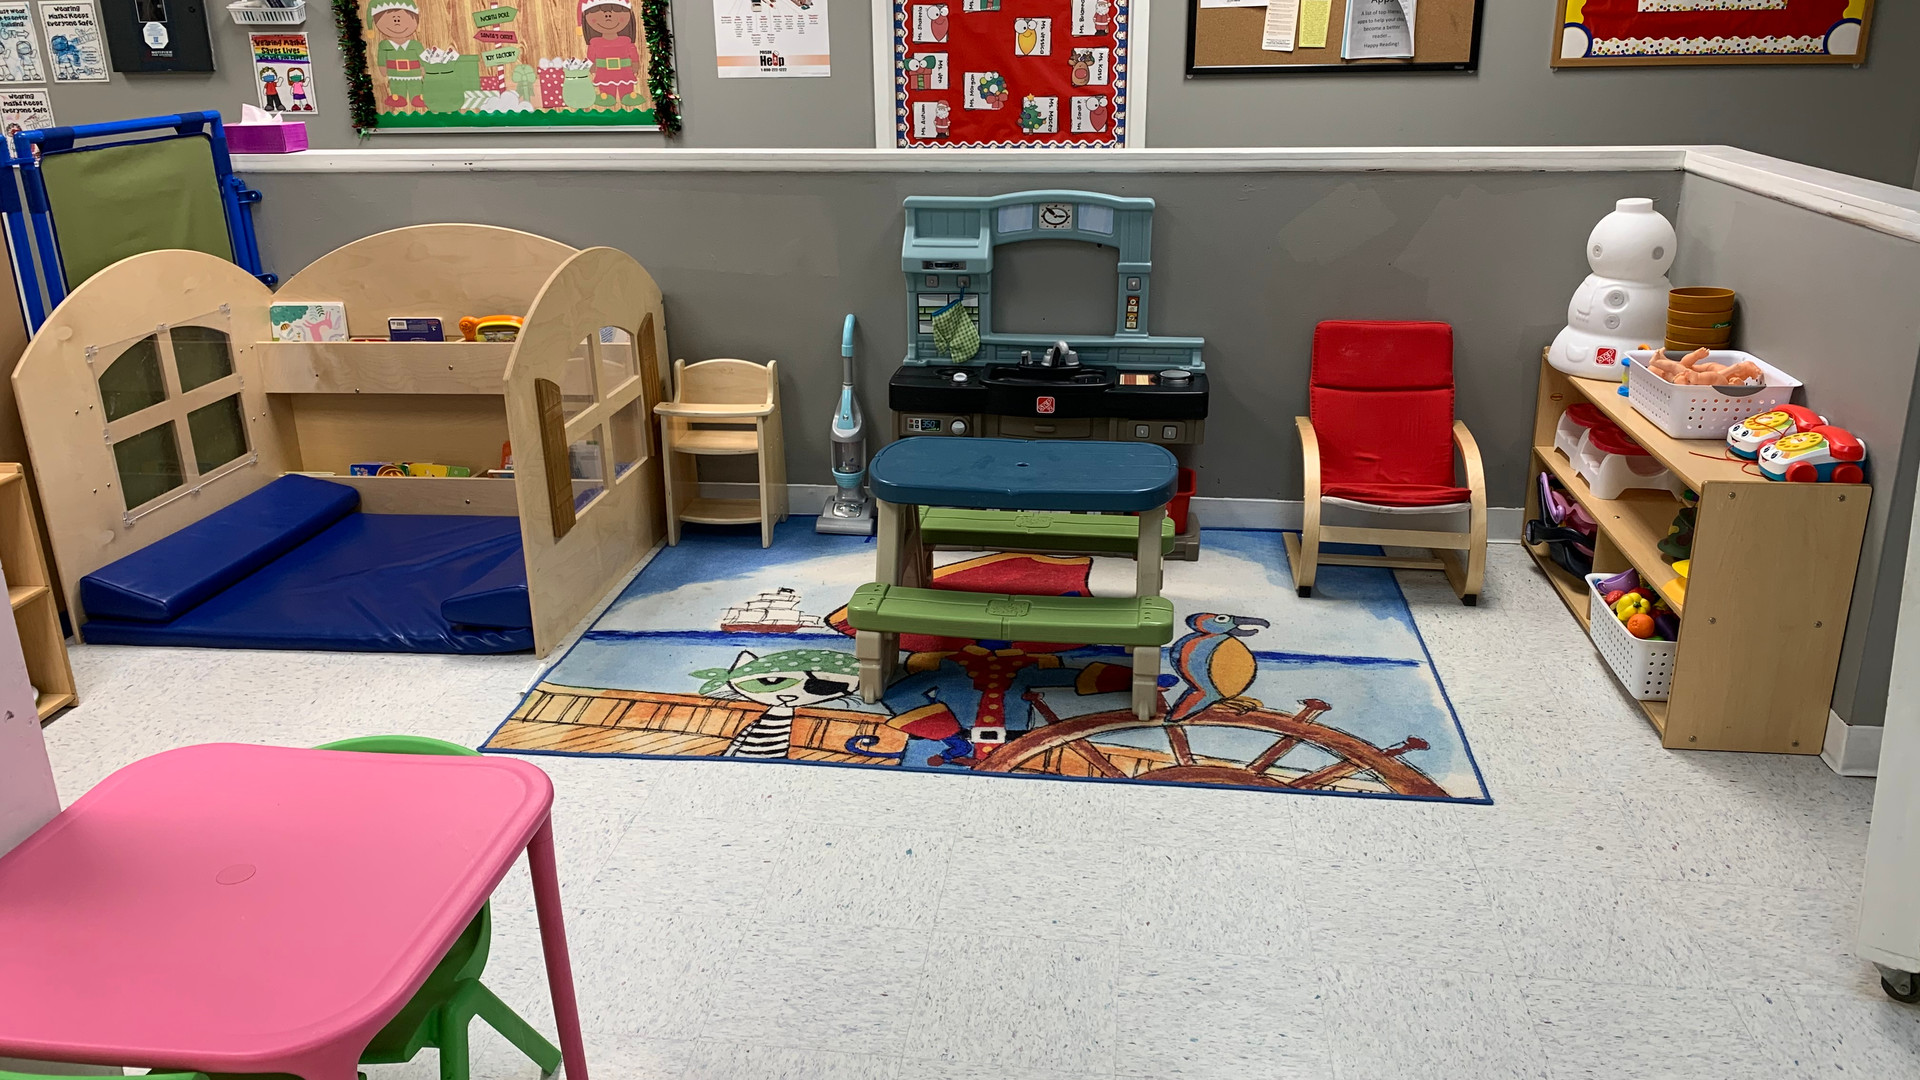 Pretend kitchen/at home play and book nook area.